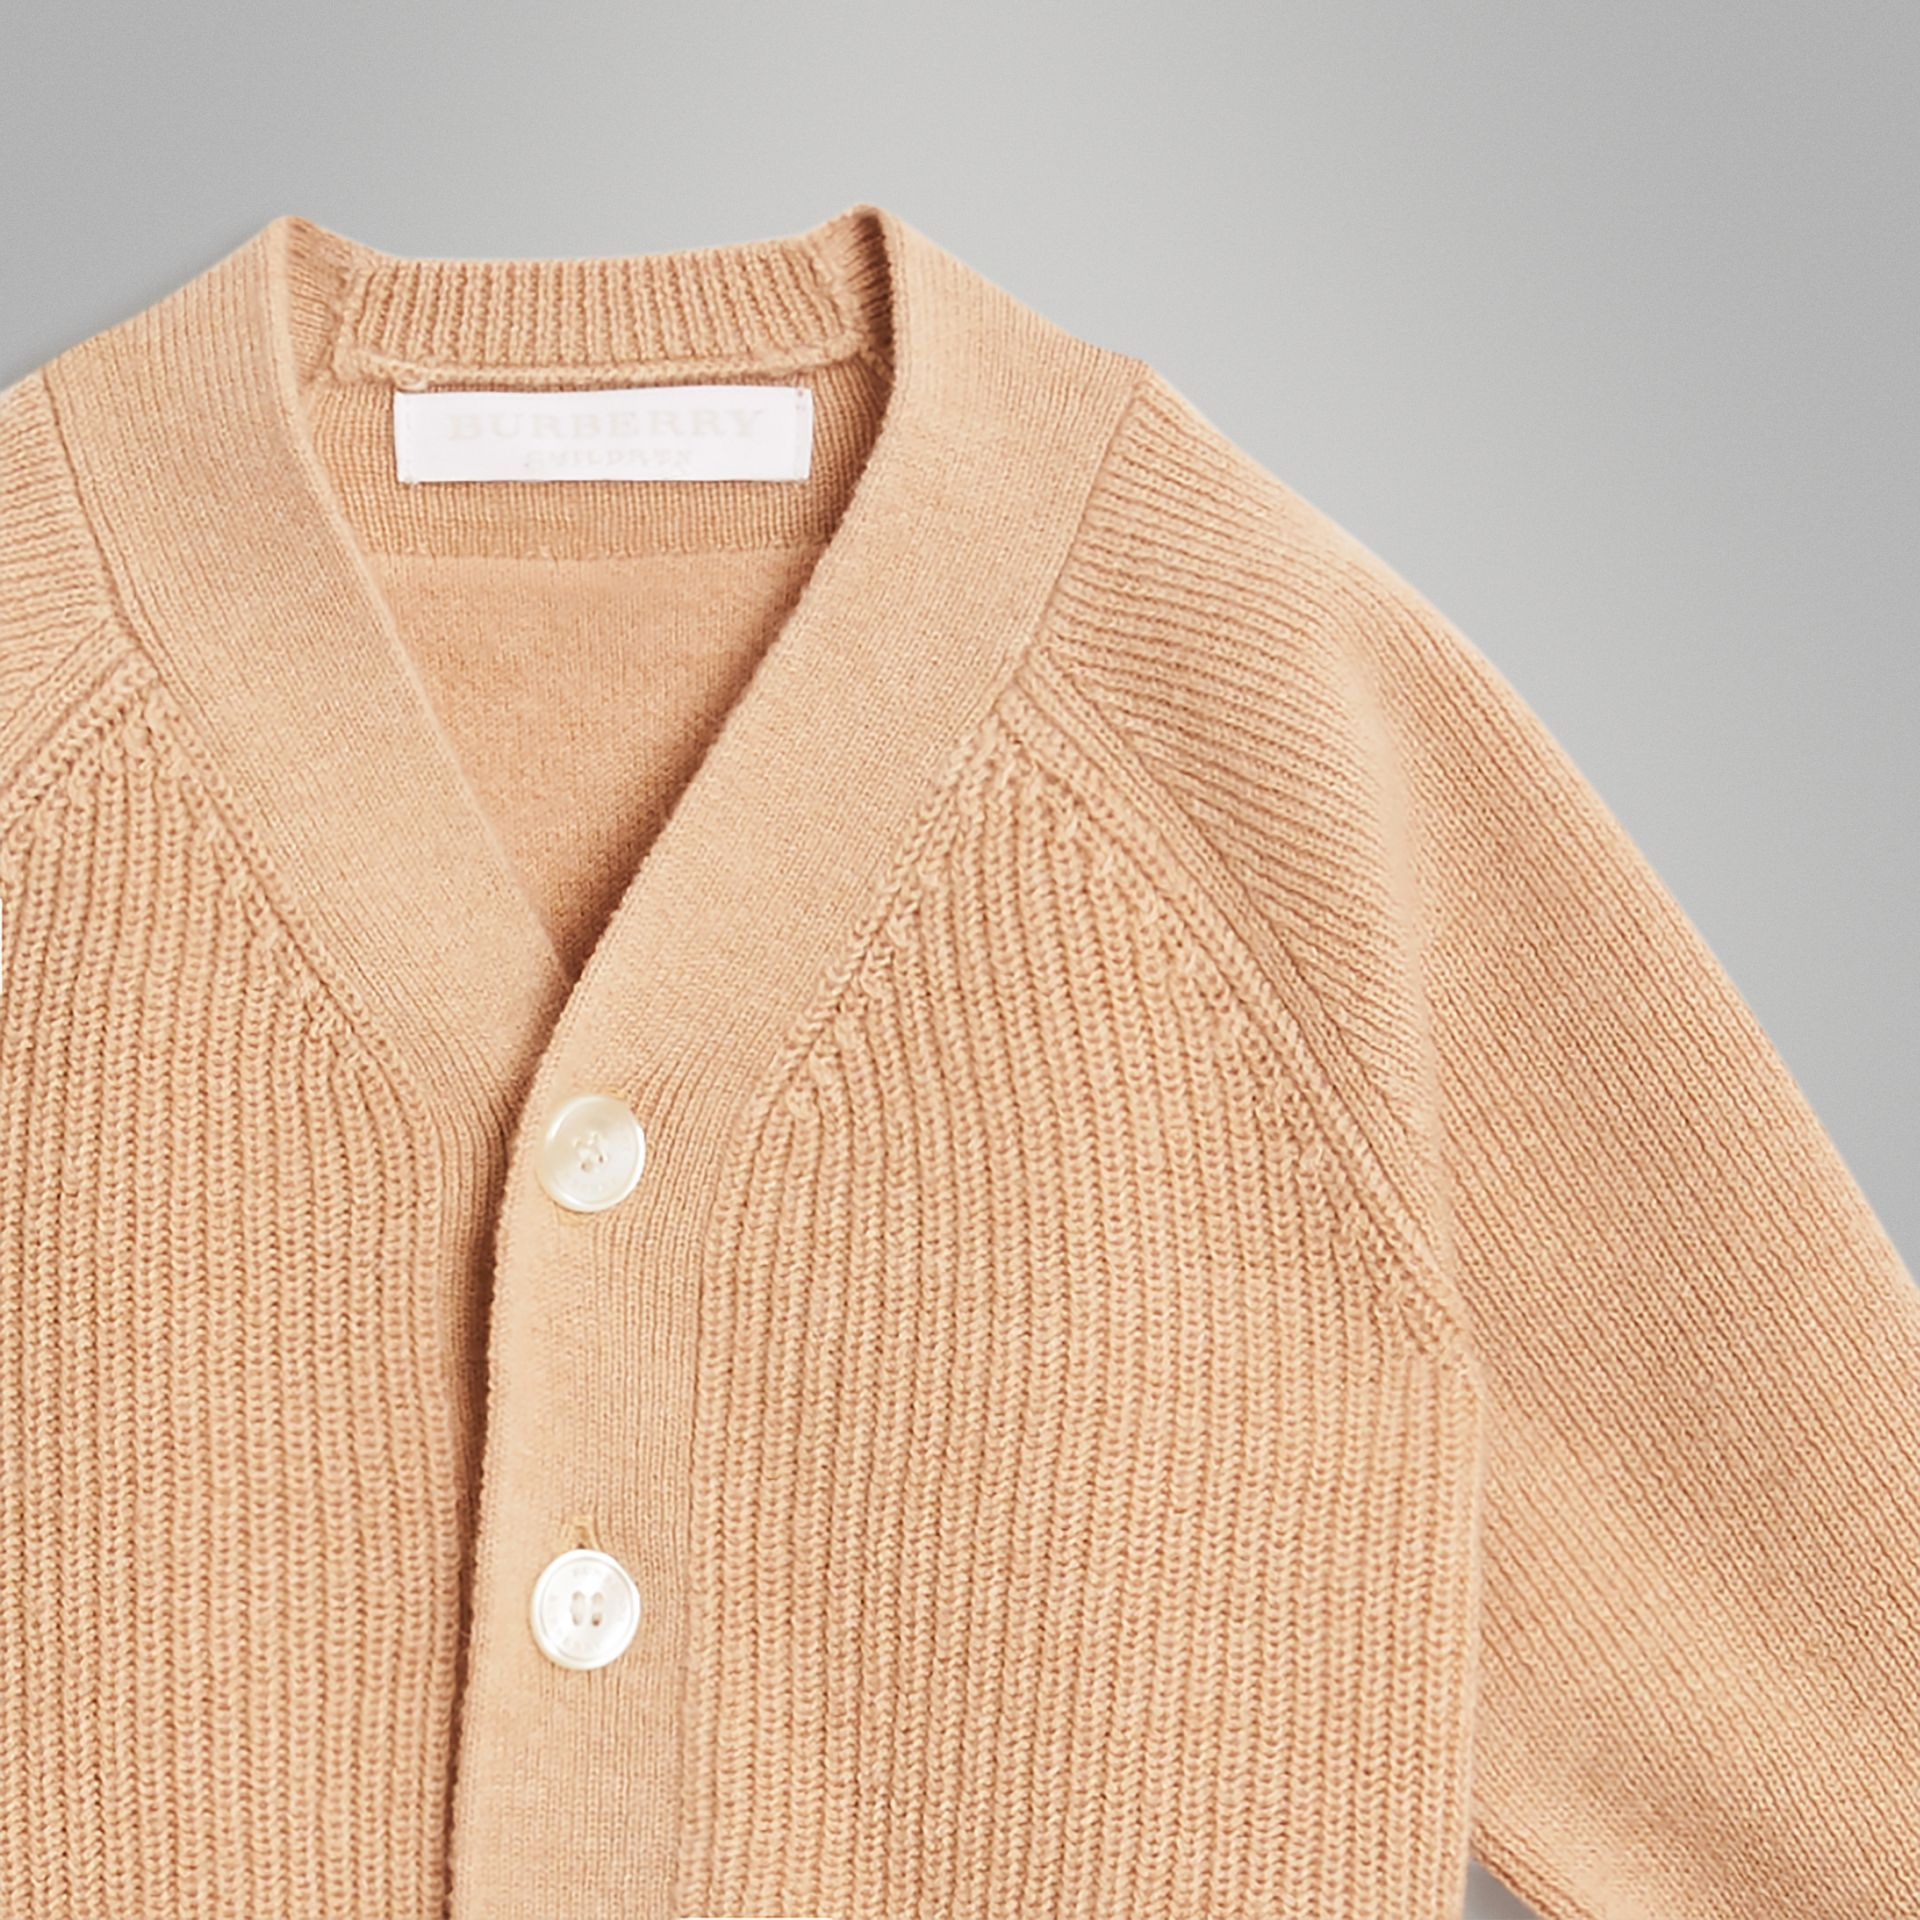 Cashmere Cotton Knit Cardigan in Peach - Children | Burberry Australia - gallery image 4